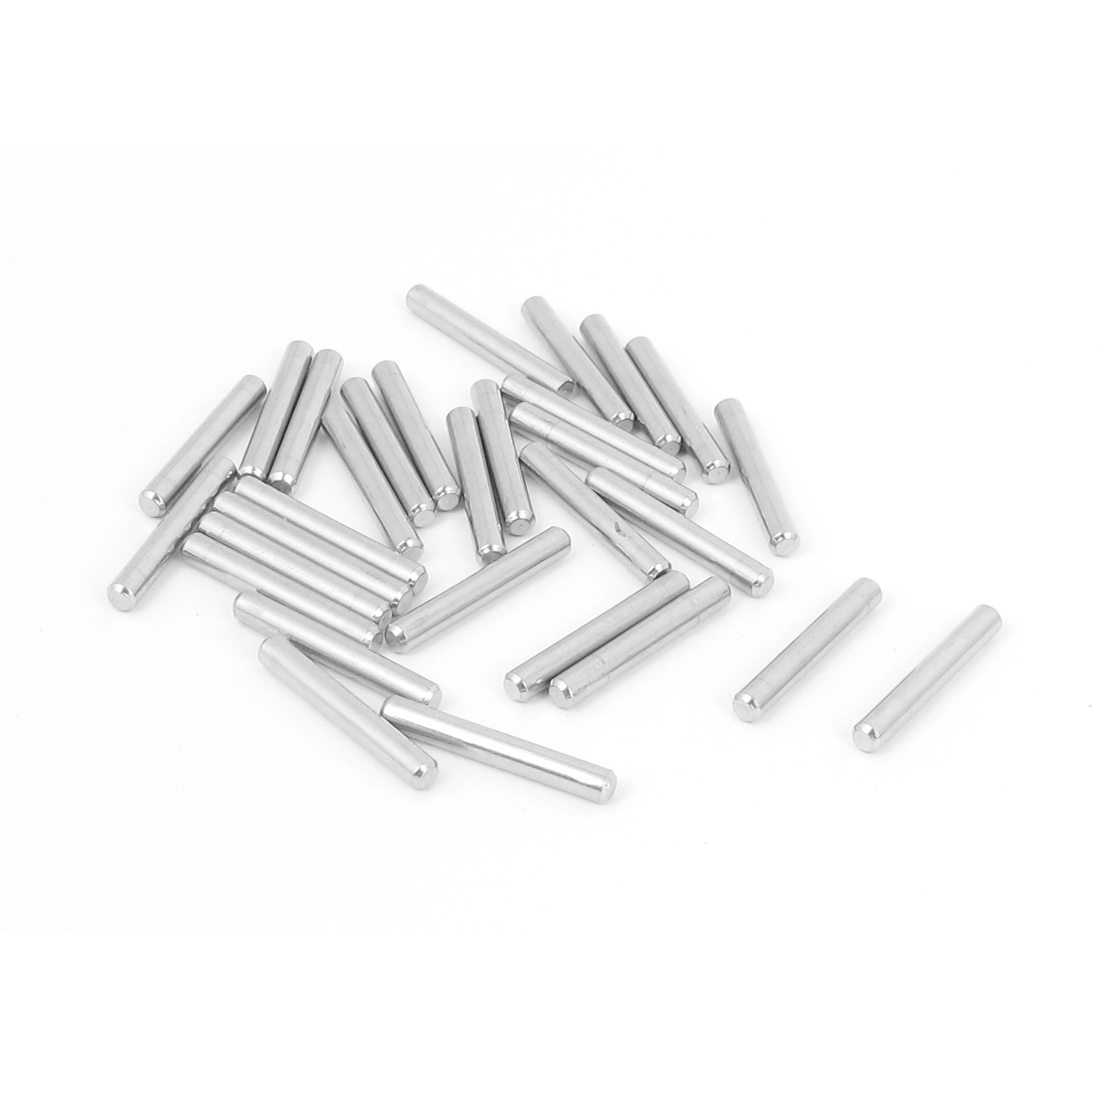 2.5mm x 18mm 304 Stainless Steel Dowel Pins Fasten Elements Silver Tone 30pcs